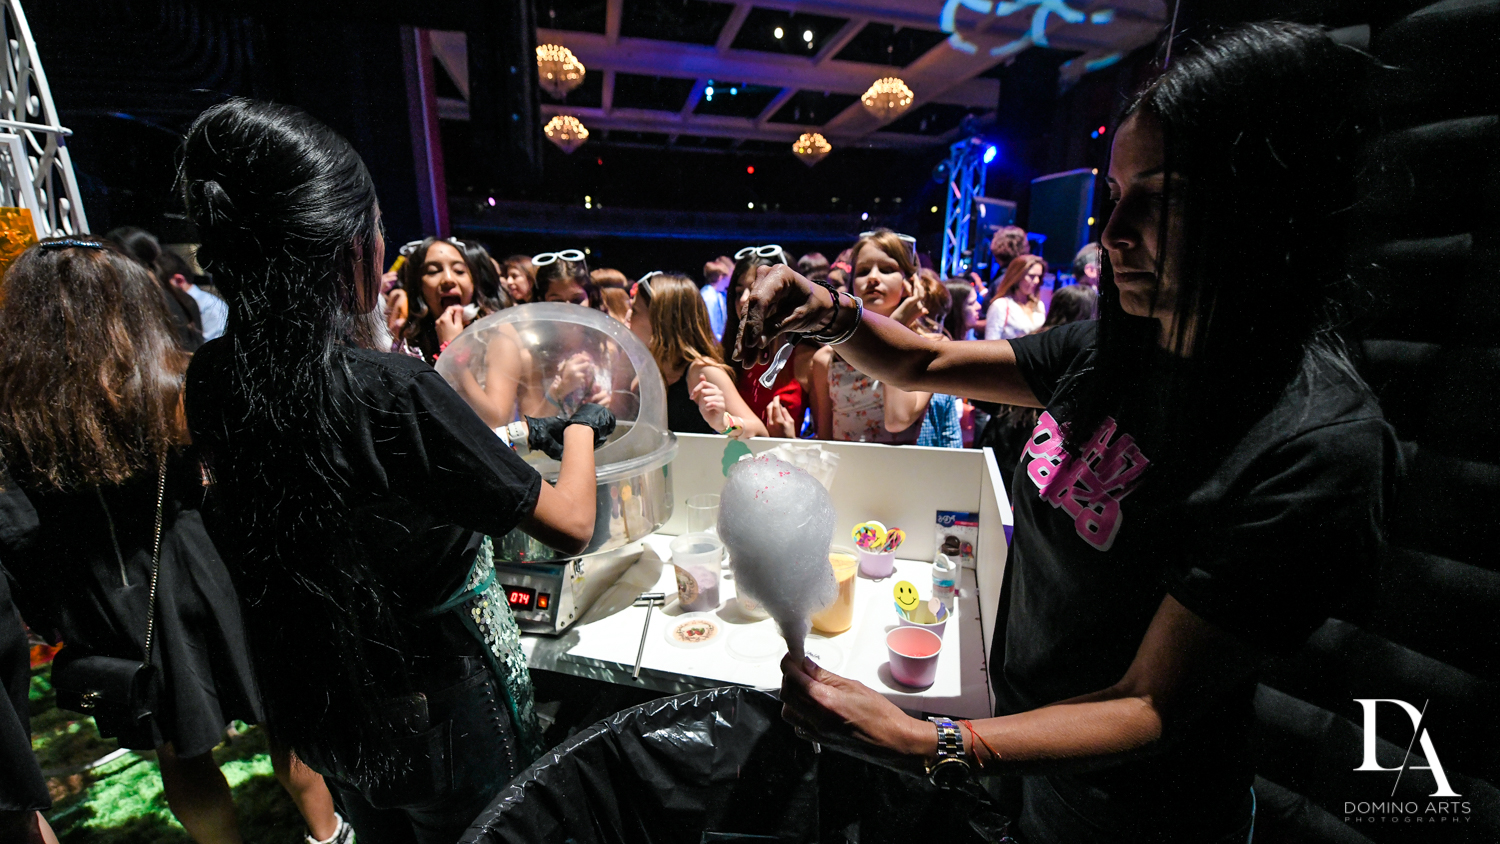 glow cotton candy at Music Festival Bat Mitzvah at The Fillmore Miami Beach by Domino Arts Photography